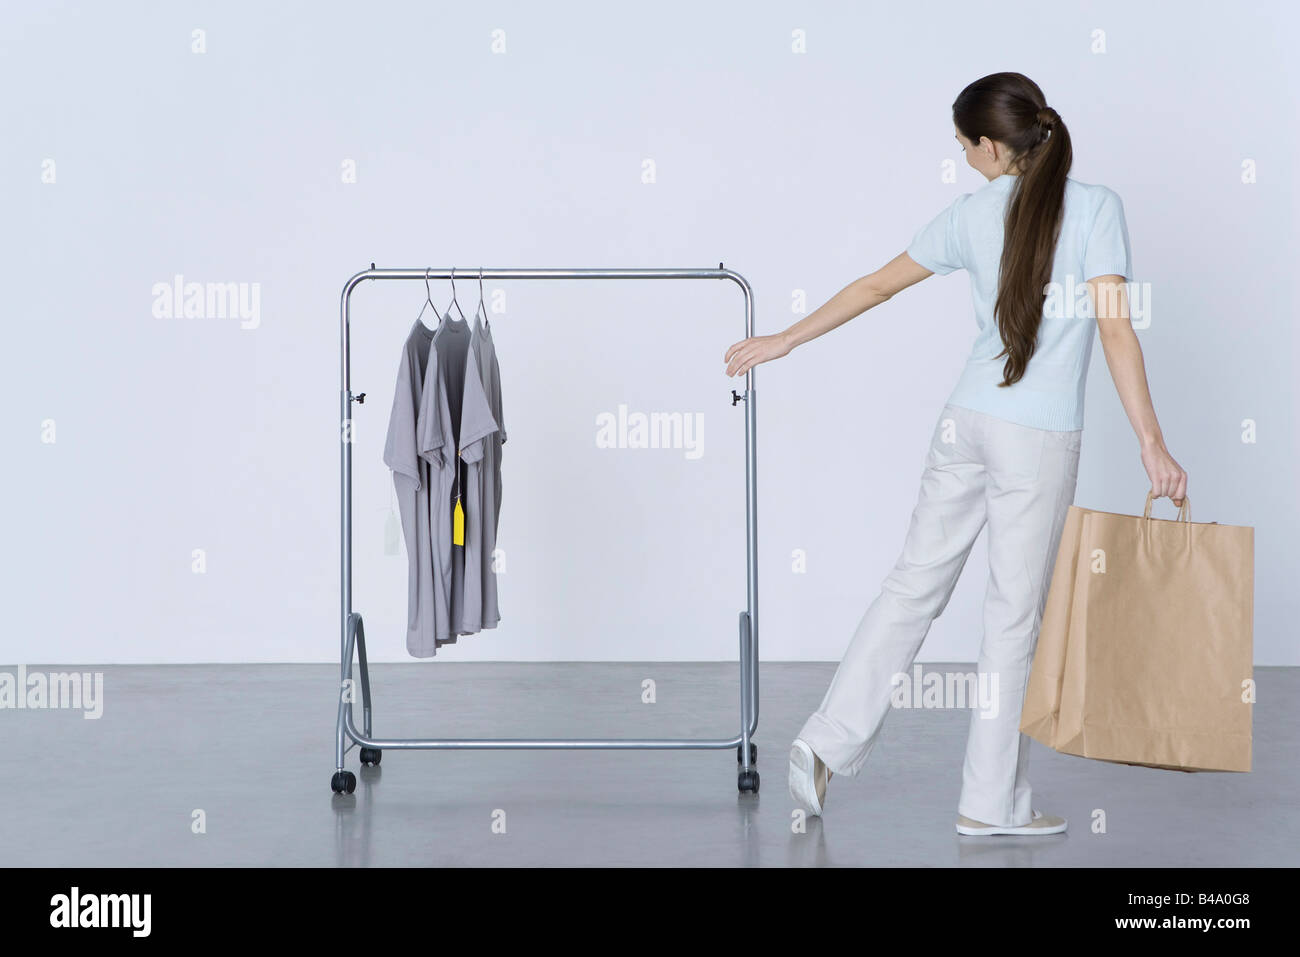 Woman carrying shopping bags and reaching toward tee-shirts on rack, rear view - Stock Image